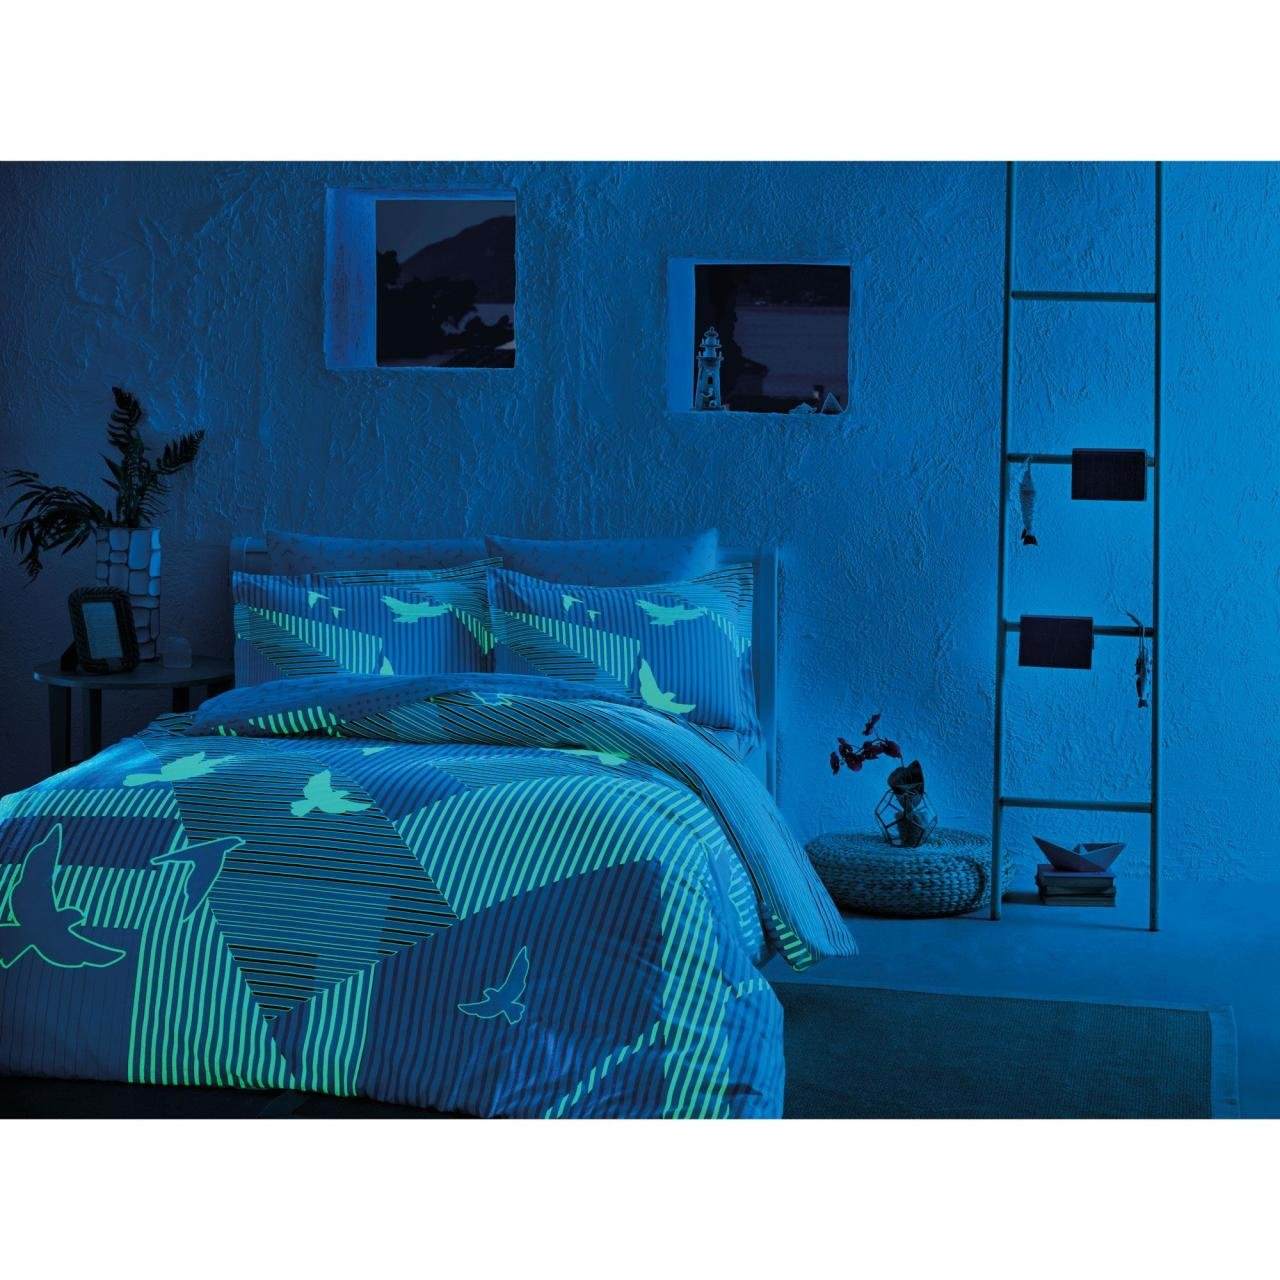 Night glowing phosphorescent fabric Striped Izzie Blue Full / Double 4 Pieces Bedding Set, 100 % Cotton Sateen Floral Duvet Cover Set with Duvet Cover, Flat Sheet and 2 Pillowcases